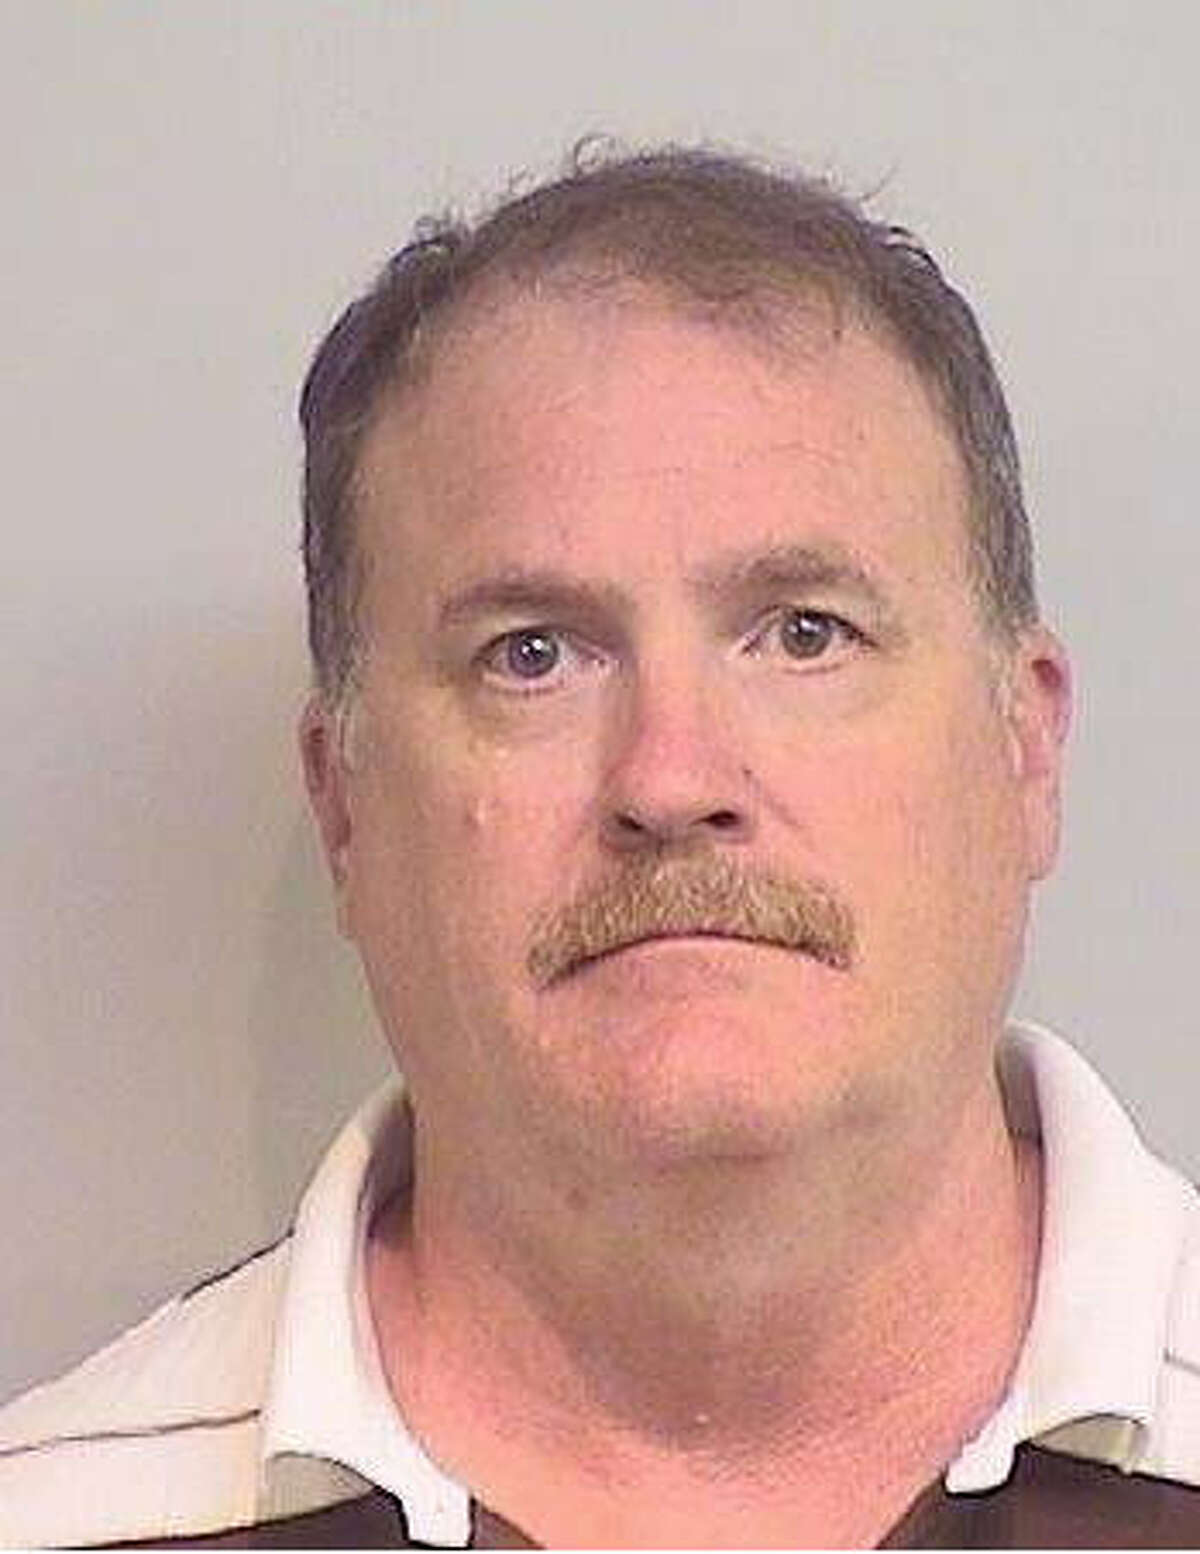 Former NASA astronaut James Halsell Jr., 59 was arrested after a crash killed 11-year-old Niomi Deona James and 13-year-old Jayla Latrick Parler of Brent, Alabama early Monday, June 6, 2016. He has been charged with murder.